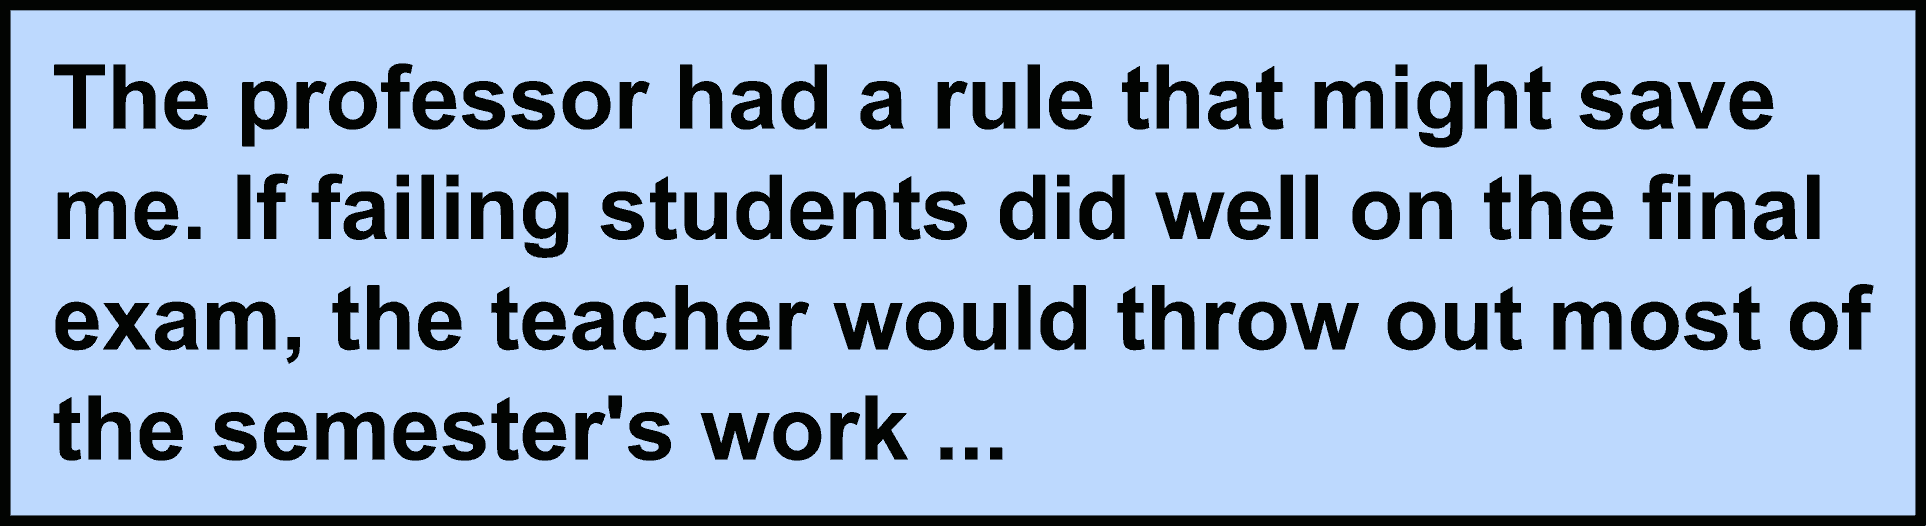 The professor had a rule that might save me. If failing students did well on the final exam, the teacher would throw out most of the semester's work ...